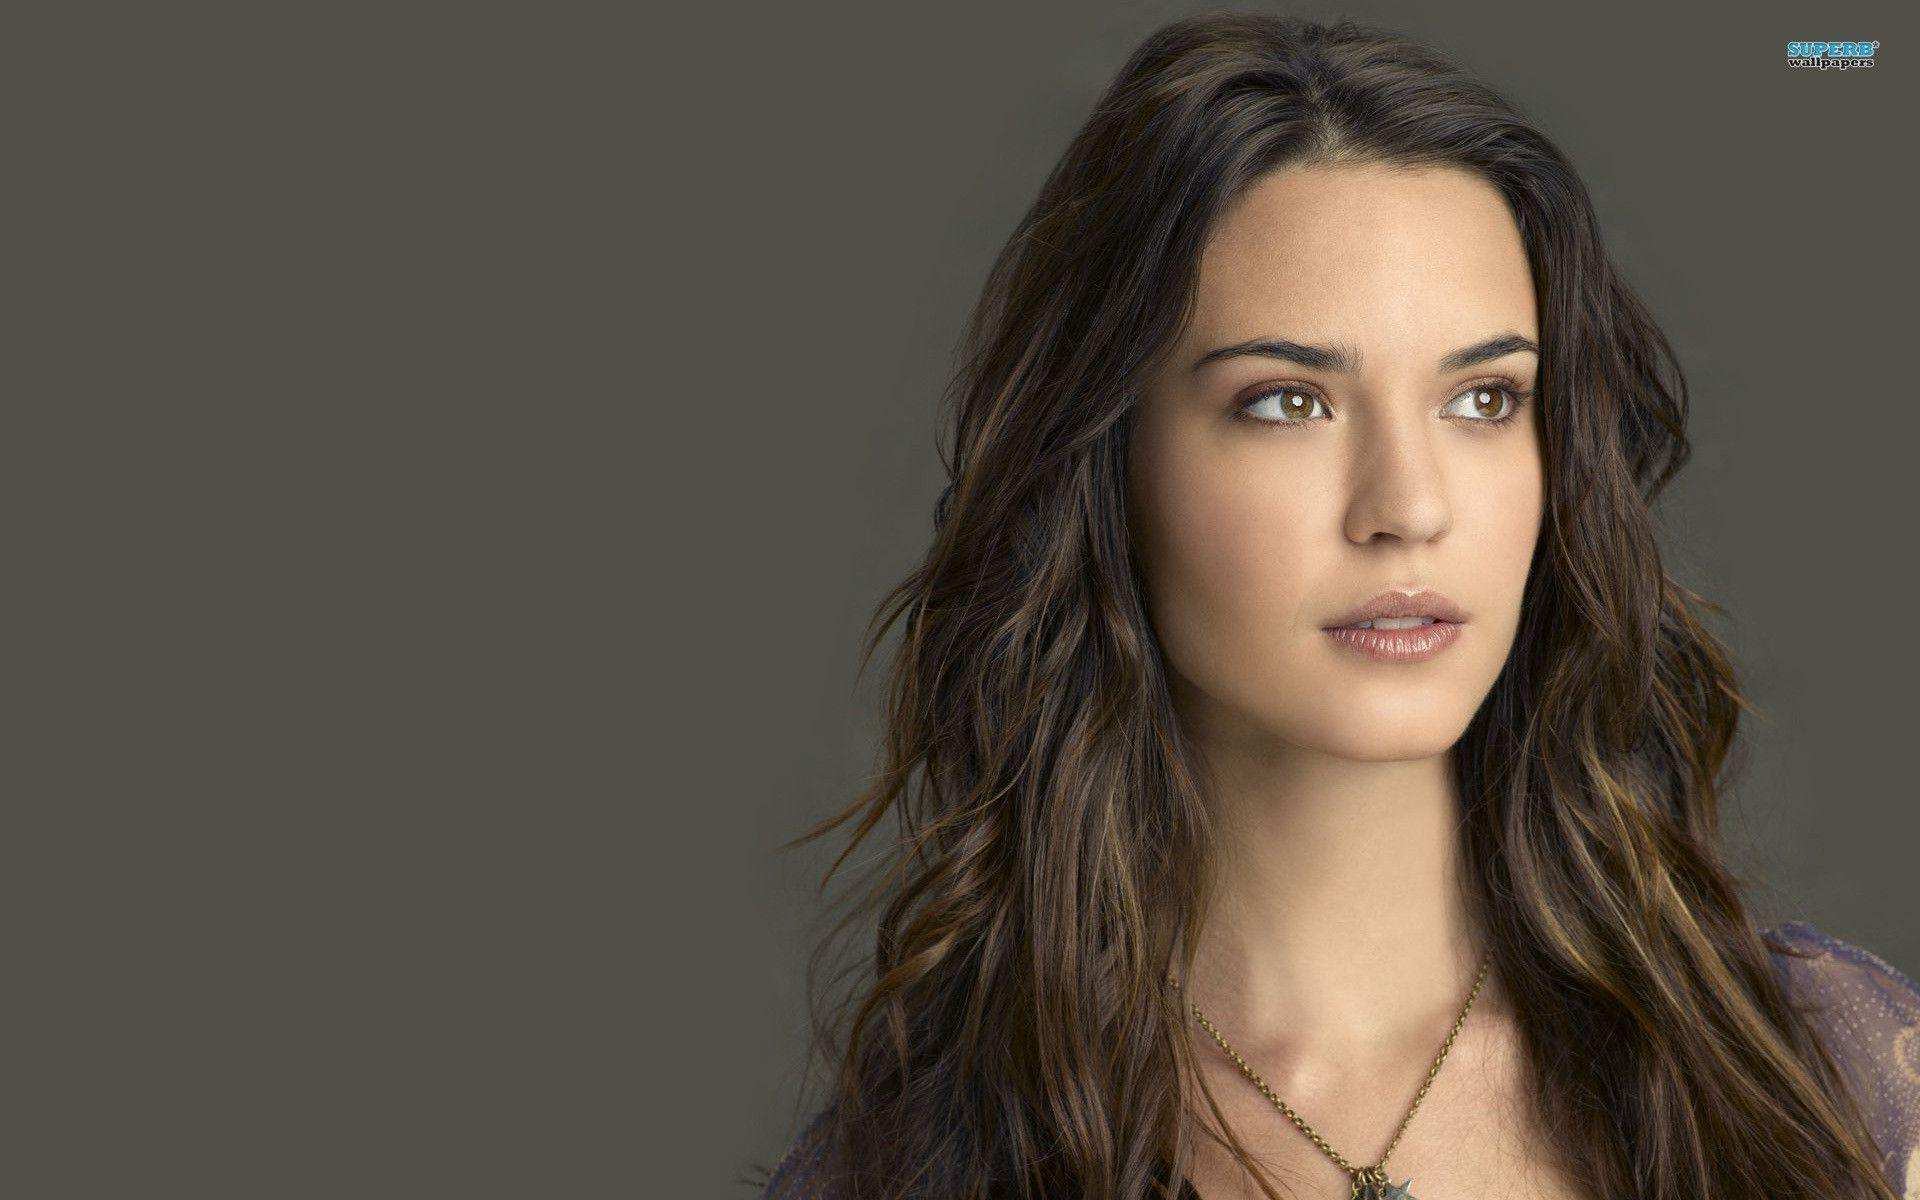 1920x1200 - Odette Annable Wallpapers 5